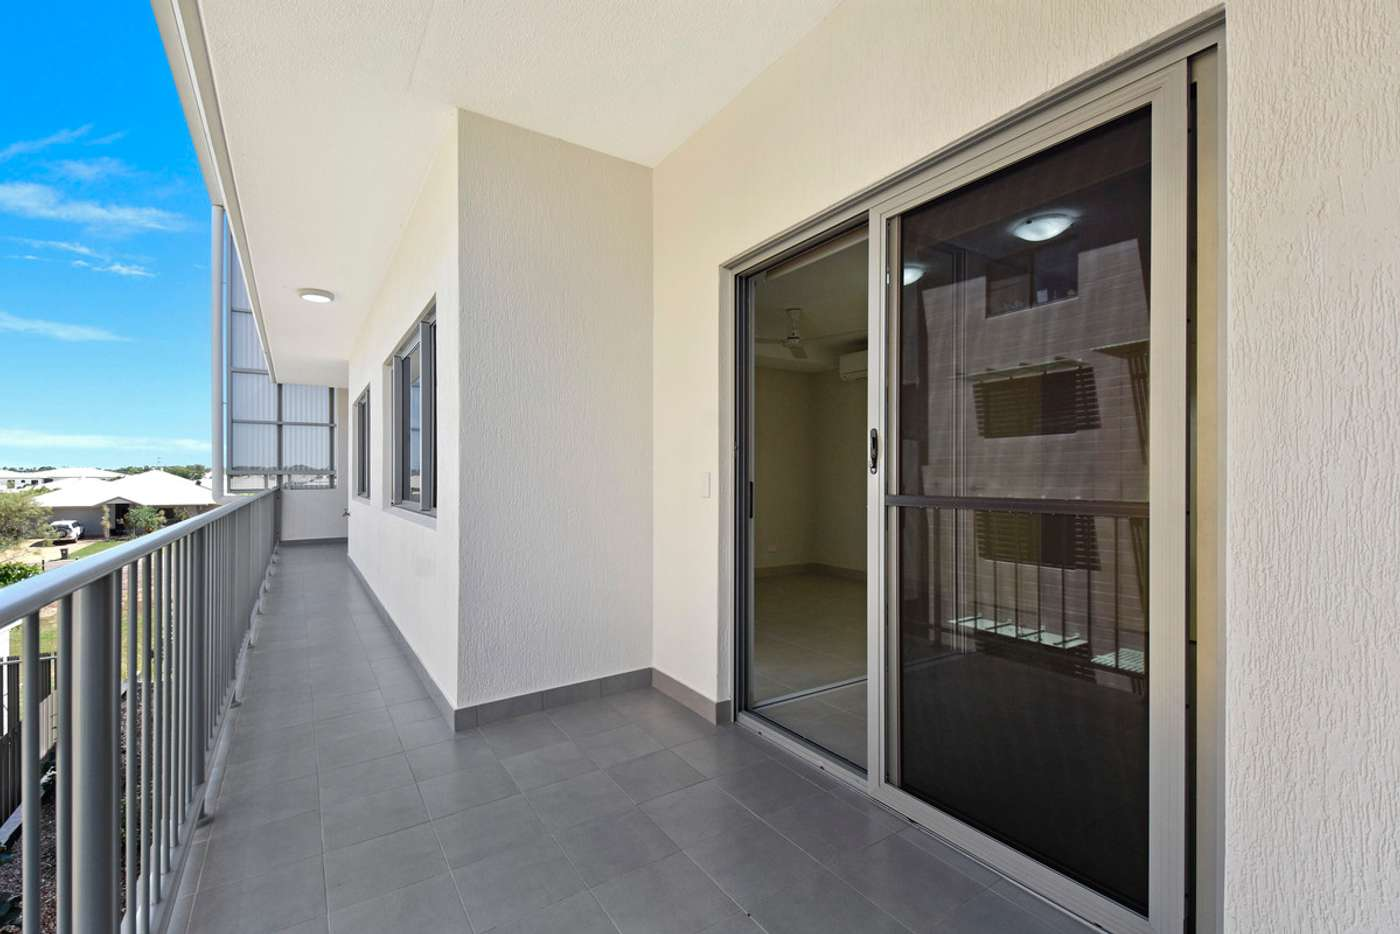 Sixth view of Homely apartment listing, 164 Forrest Parade, Rosebery NT 832